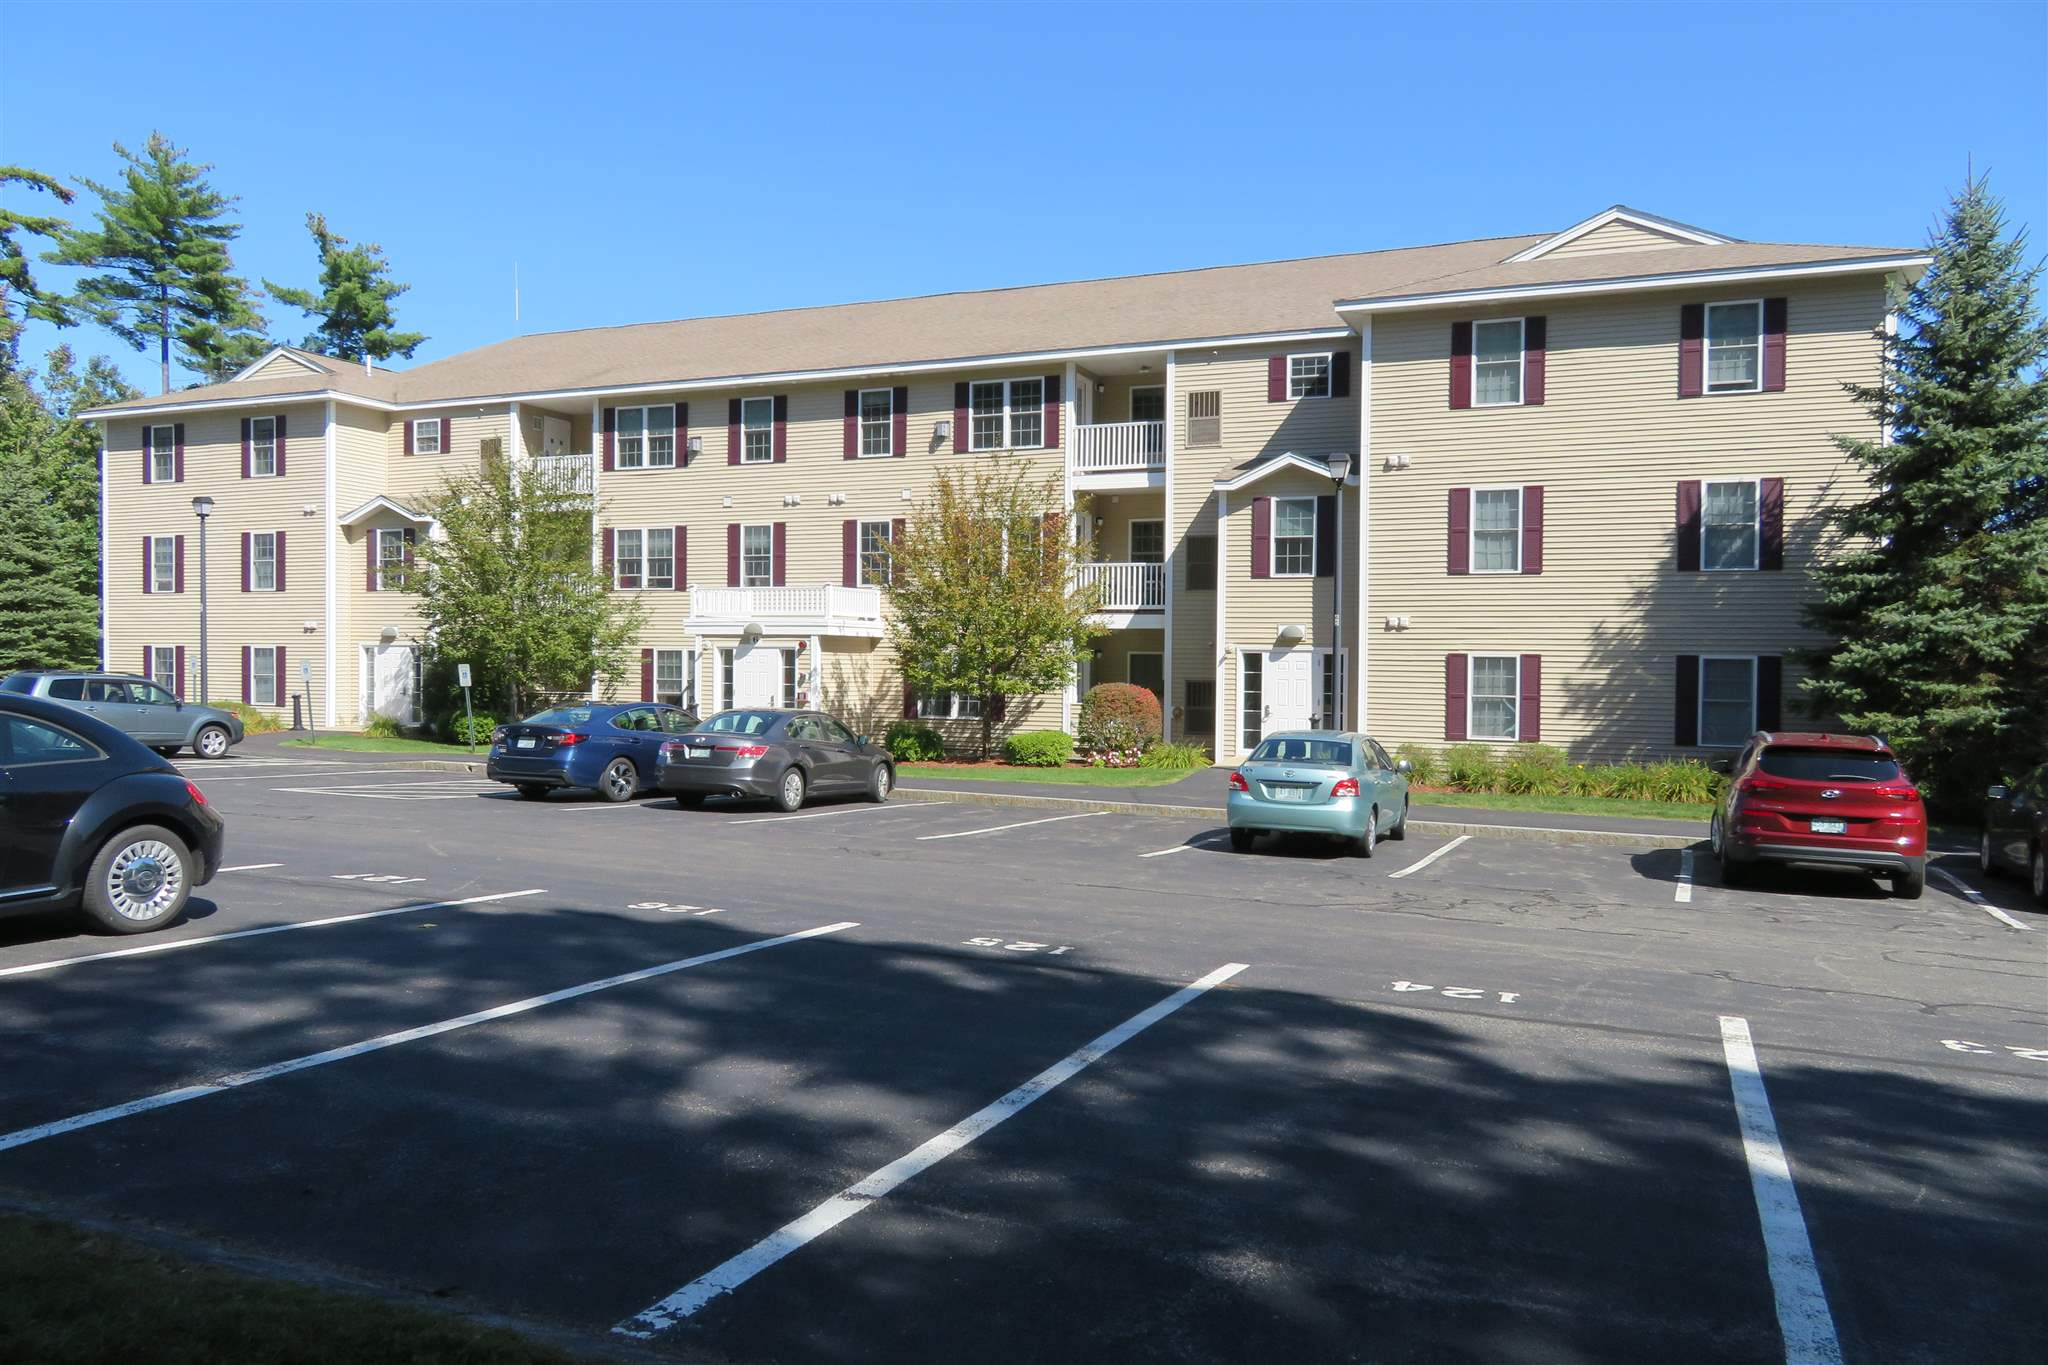 MLS 4829770: 6 Crestview Circle-Unit 137, Londonderry NH